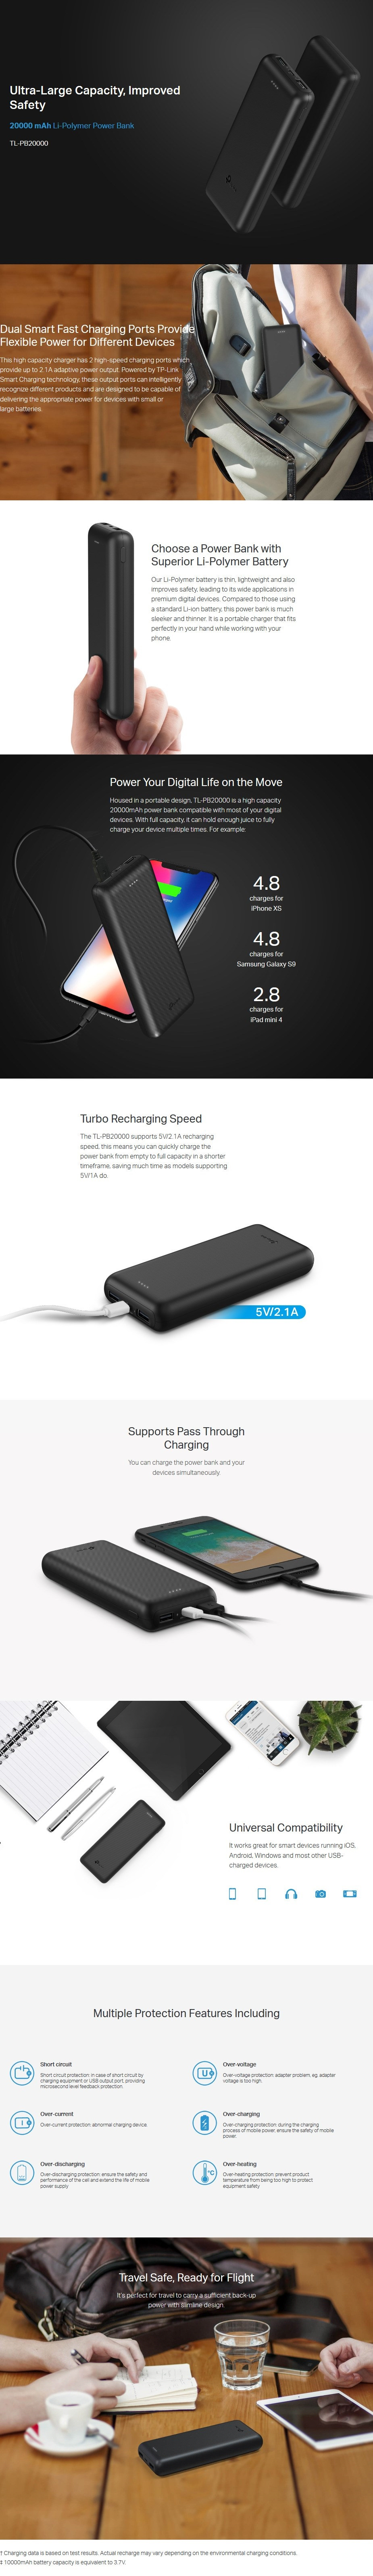 TP-Link TL-PB20000 20000mAh Li-Polymer Power Bank w/ 2 High-speed Charging Ports